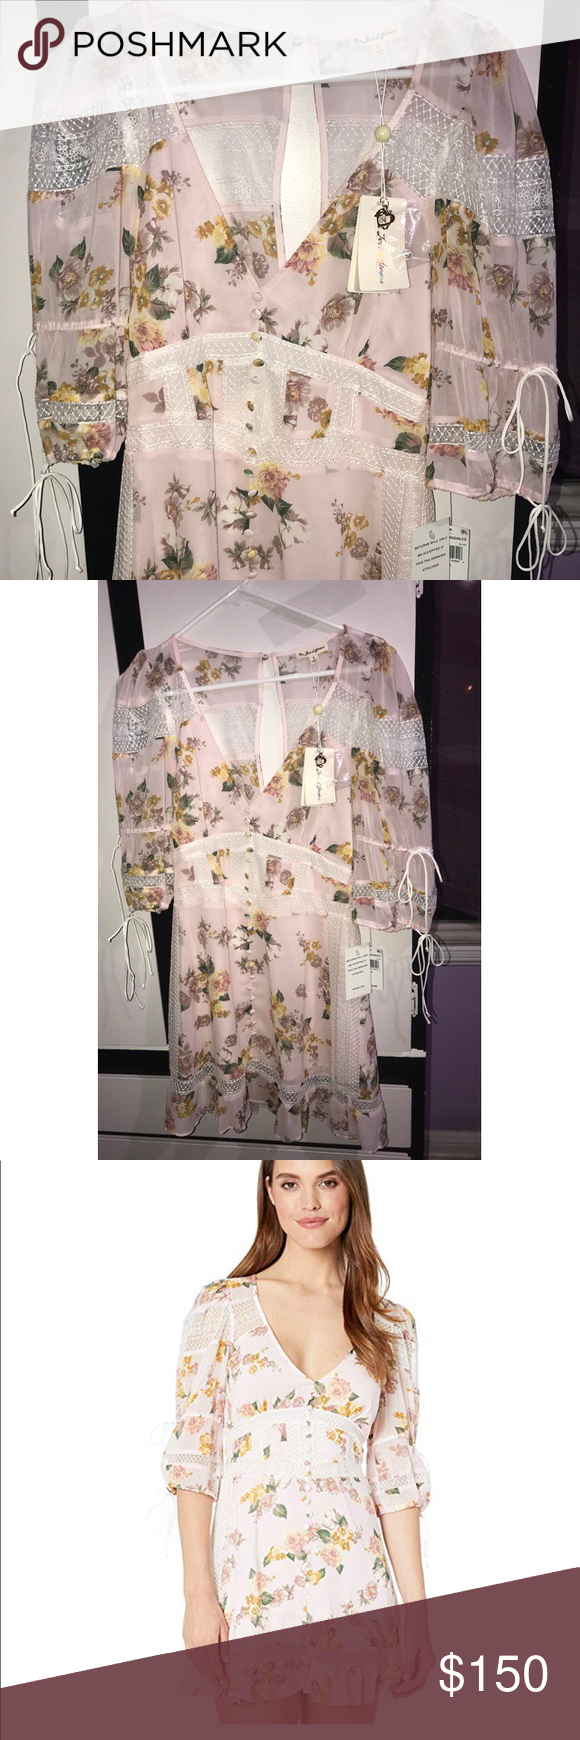 NWT For Love & Lemons Dress For Love and Lemons Isadora Mini Dress  SIZE SMALL   RETAIL -$334 I'm selling for great deal ‼️  I❤️offers  NEW NEVER WORN!!  The line taunts with intrigue as a clash of colors and patterns are evoked by chic separates and devious dresses. Where the modern gypsy is punk, For Love & Lemons is a brand to relate to, for that girl that doesn't follow trends, she makes them. For Love And Lemons Dresses Mini